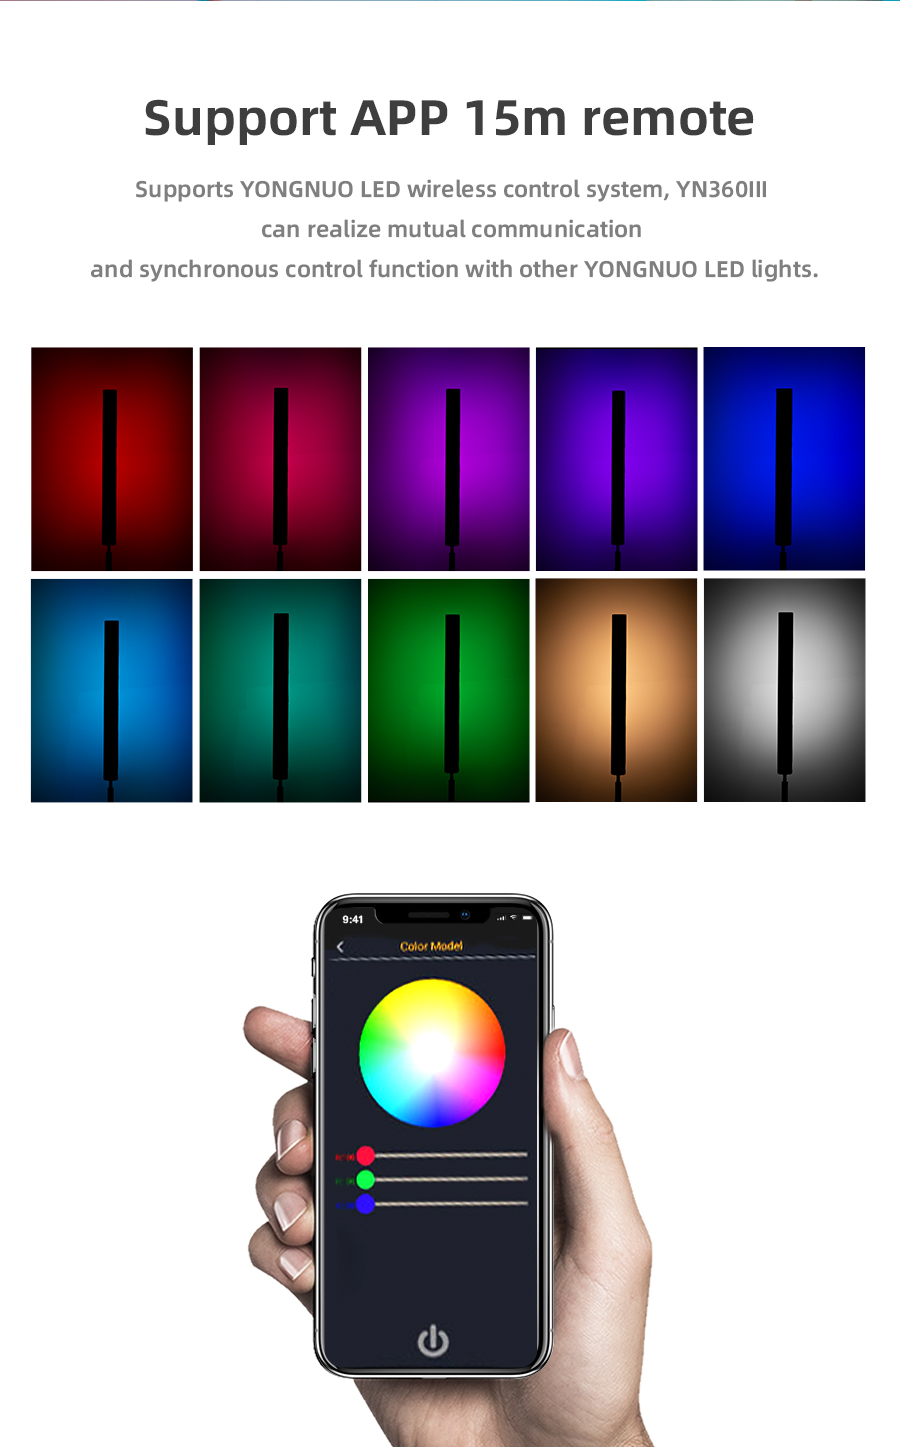 H3287508a15be43bcb208f1e18e610e9eb Yongnuo YN360 III YN360III Handheld 3200K-5500K RGB Colorful Ice Stick LED Video Light Touch Adjusting Controlled by Phone App